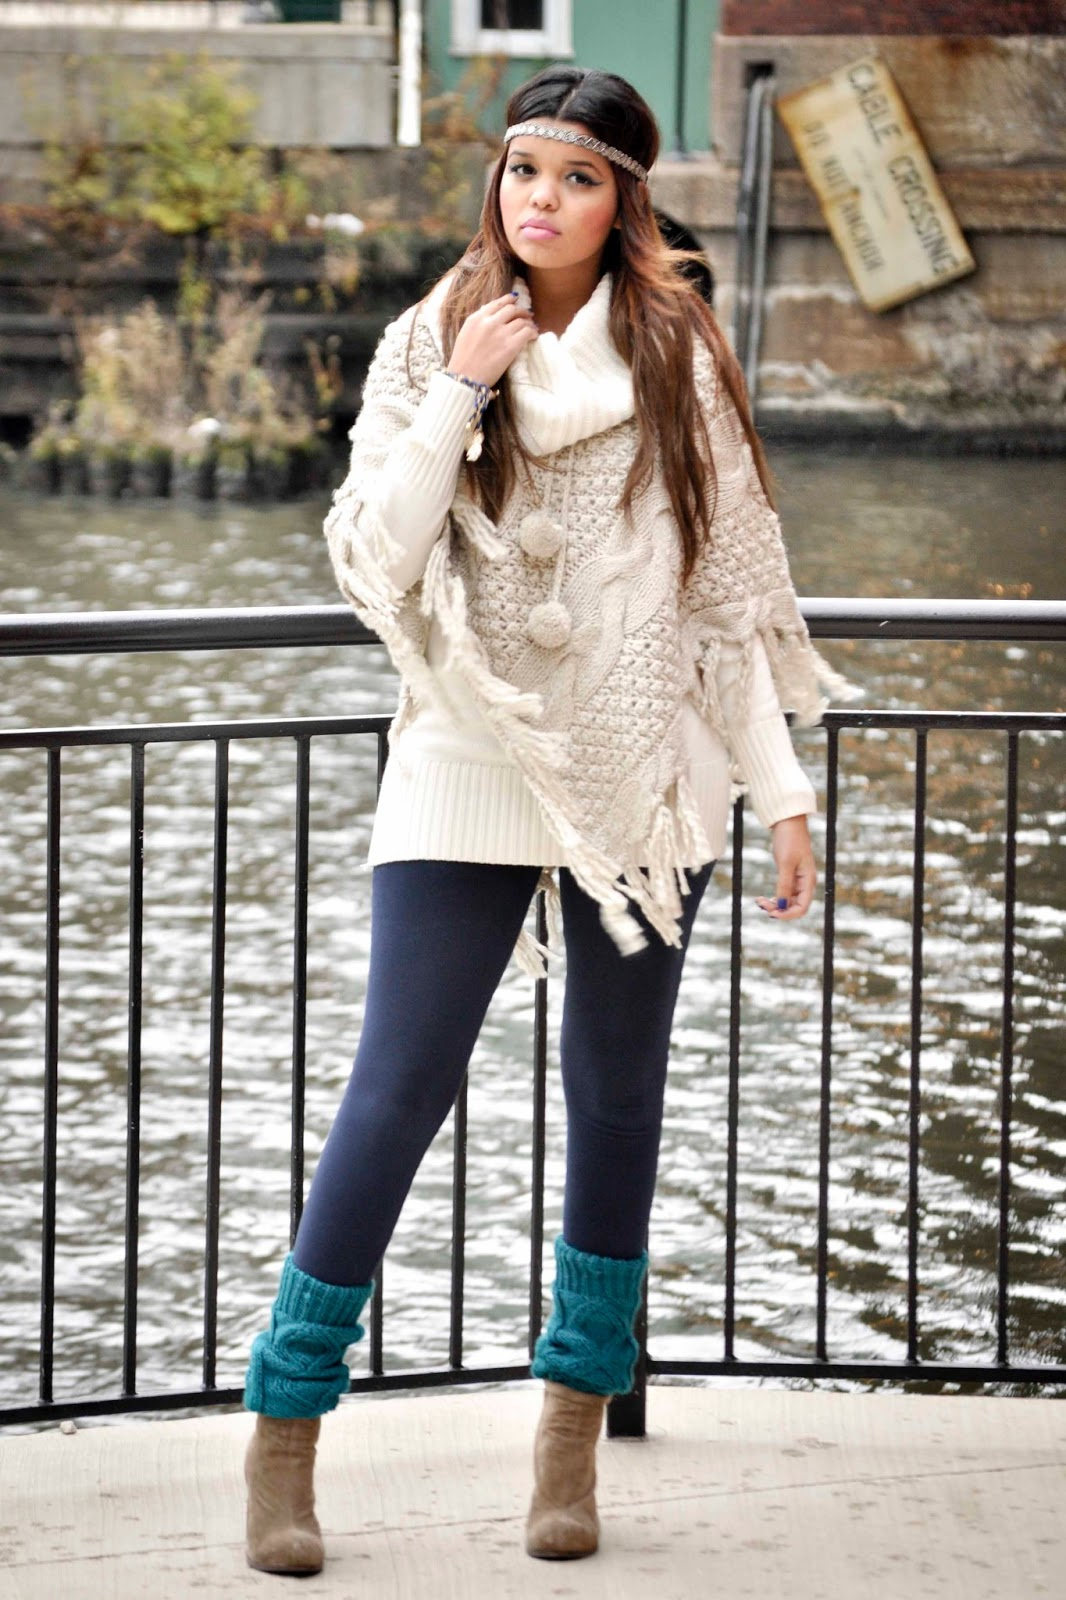 blue-navy-leggings-white-sweater-poncho-hairr-head-socks-tan-shoe-booties-fall-winter-weekend.jpg